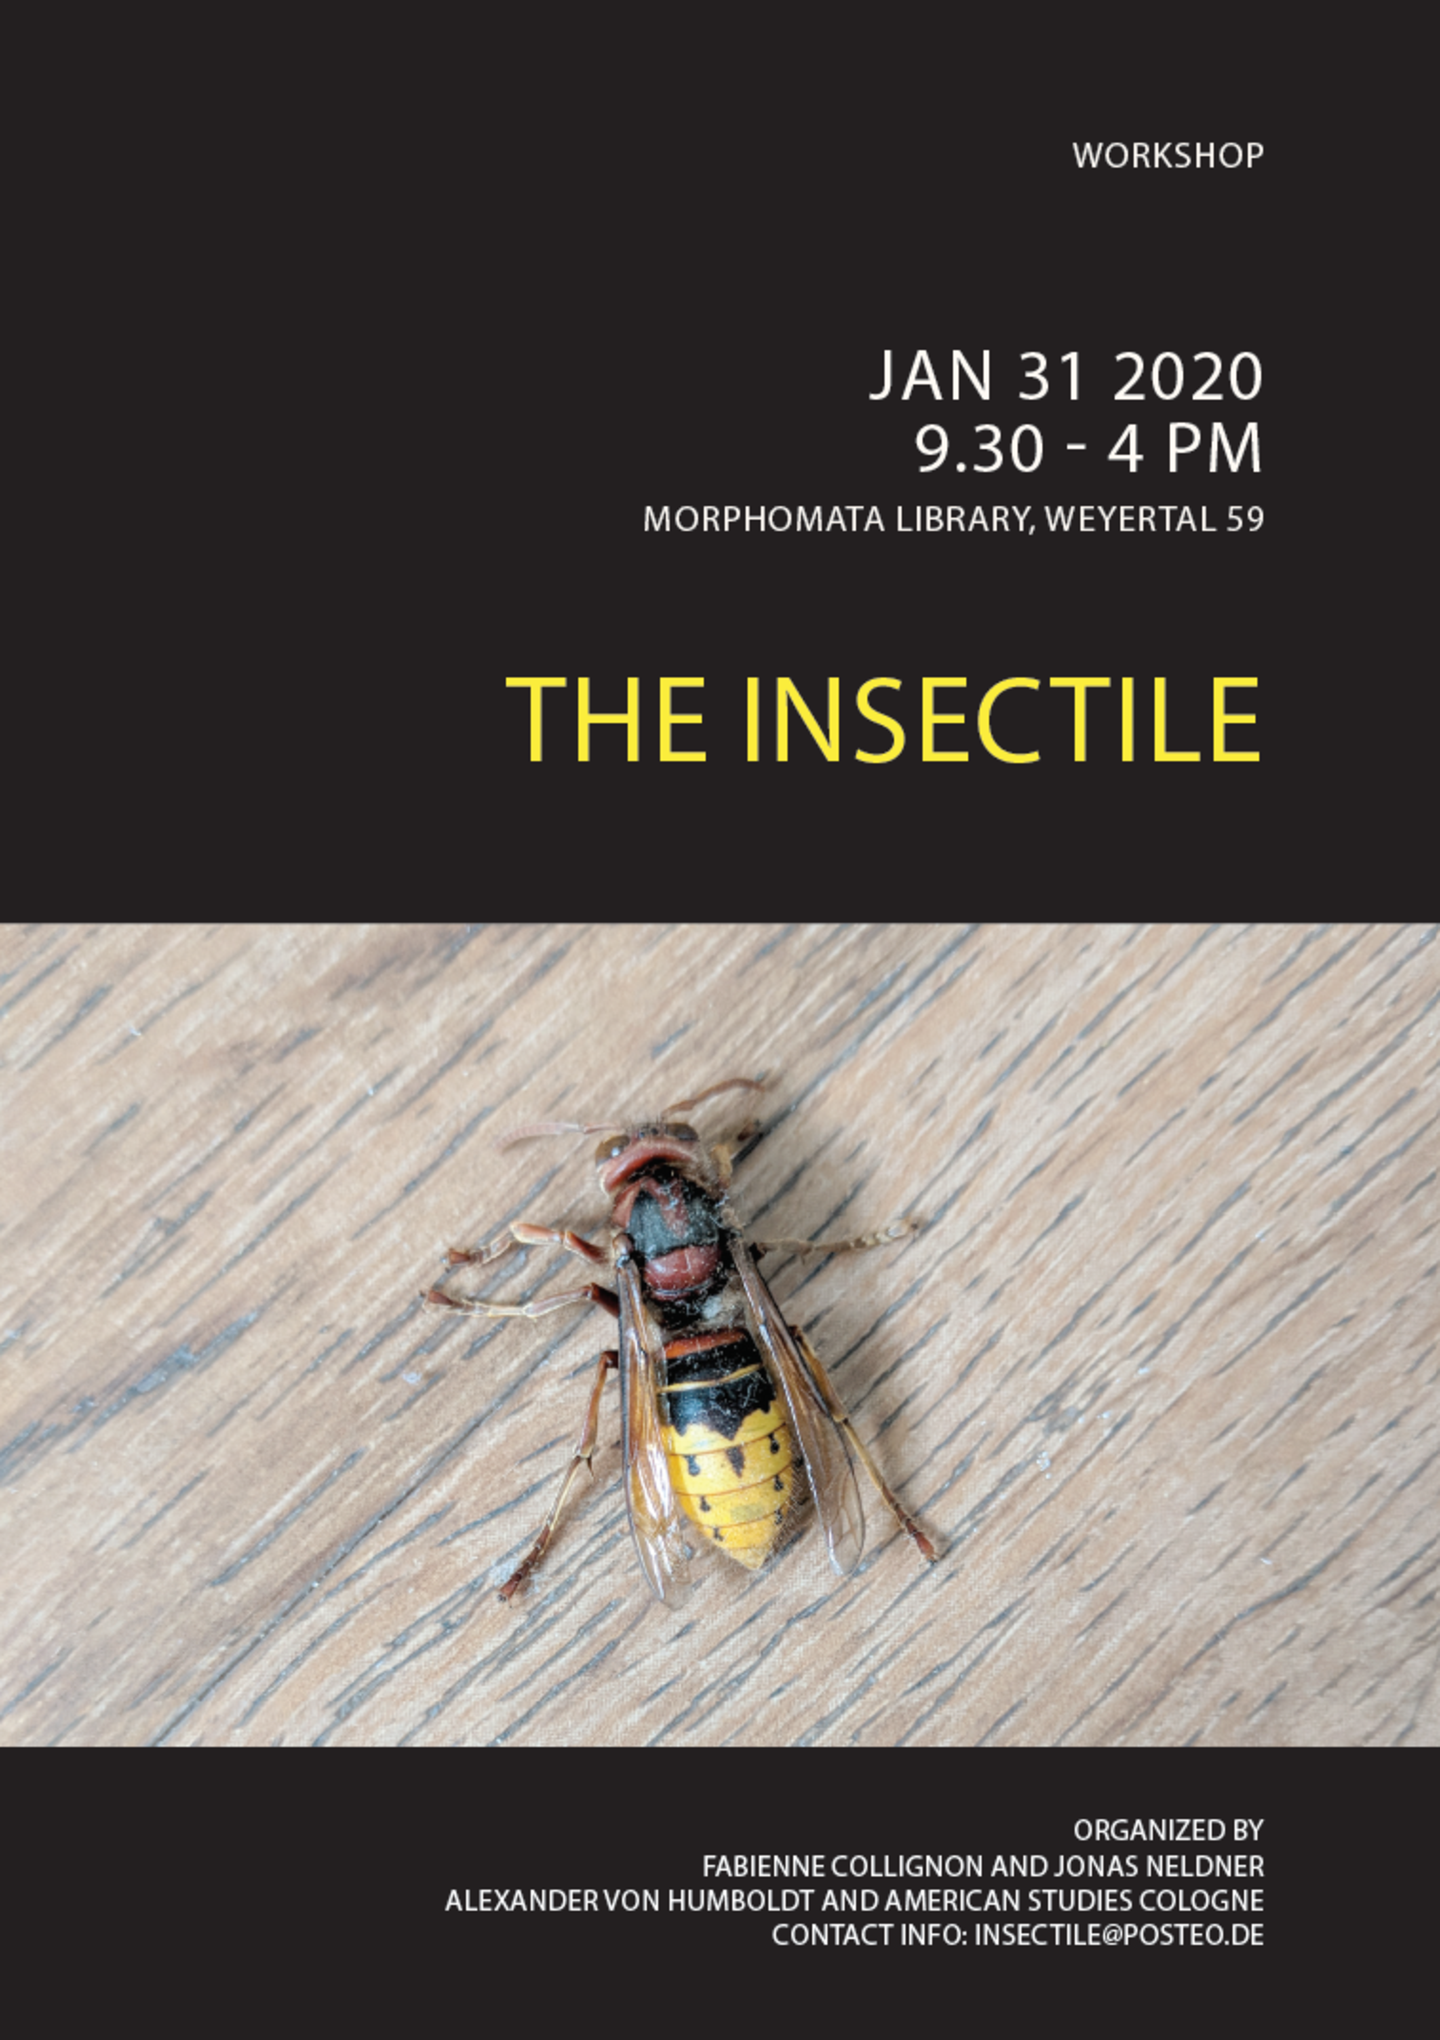 Poster for the Workshop: The Insectile